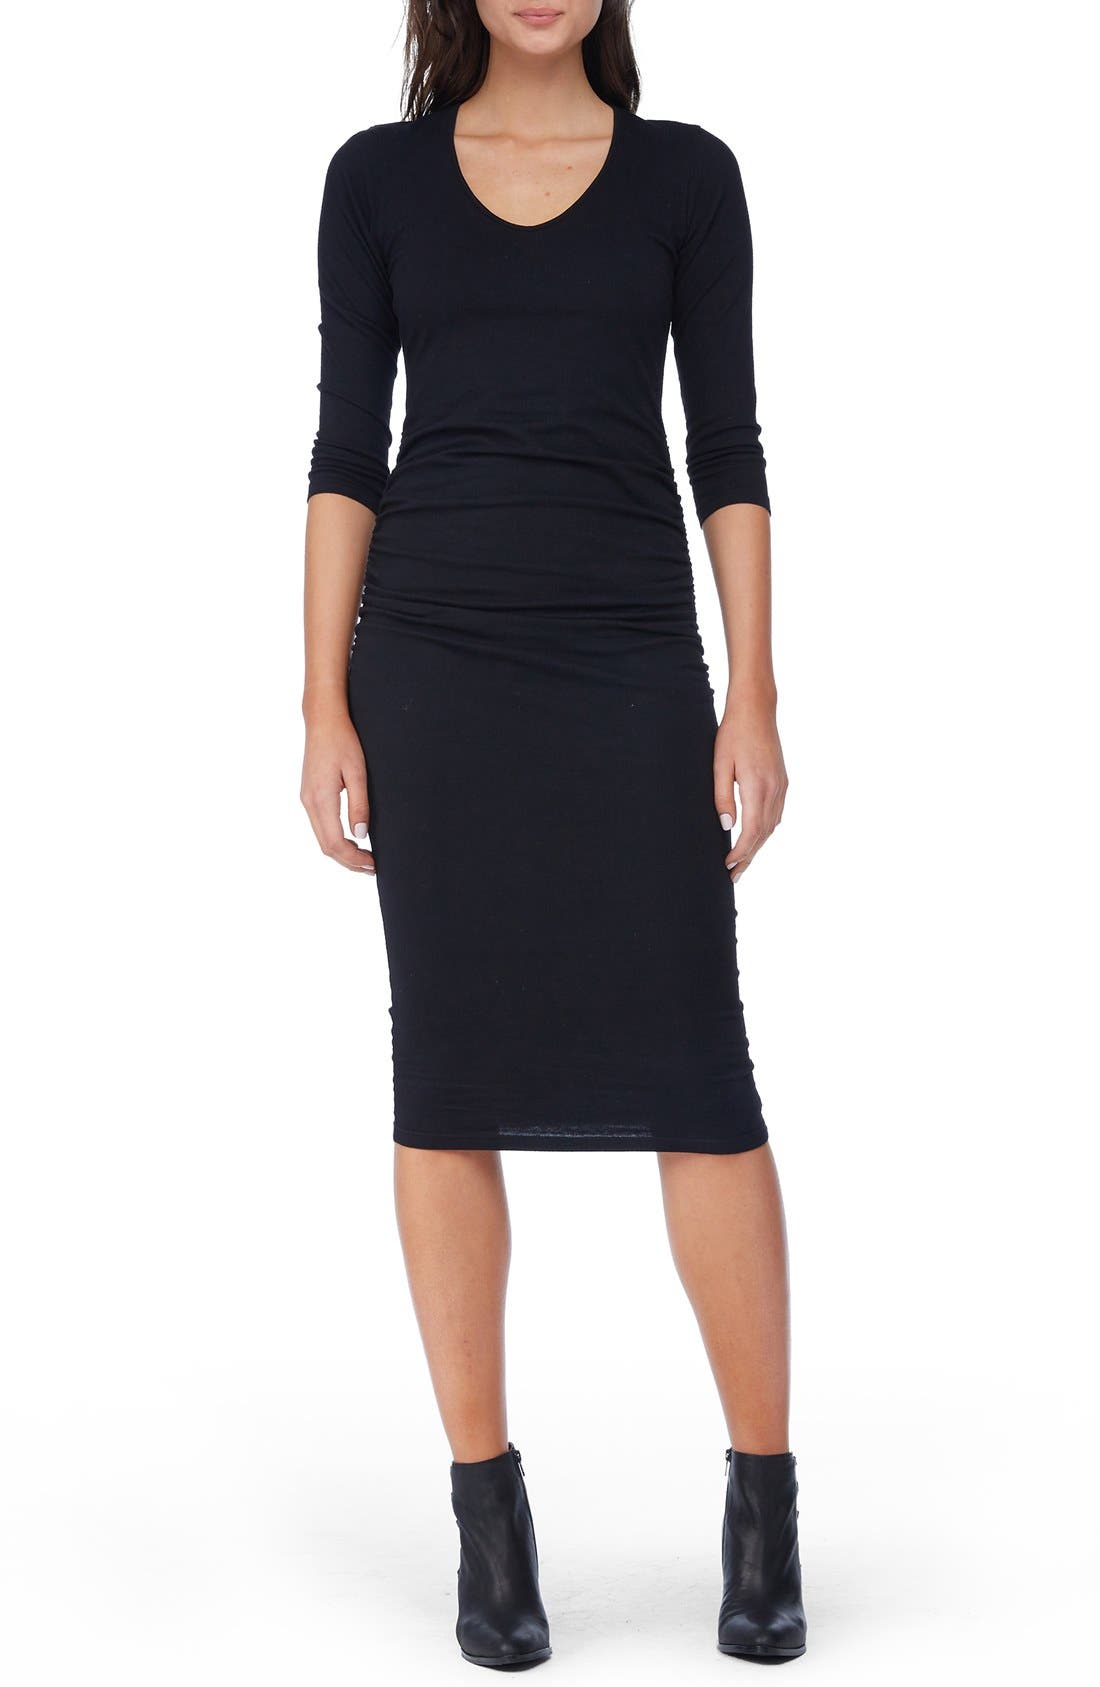 MICHAEL STARS, Ruched Midi Dress, Main thumbnail 1, color, BLACK